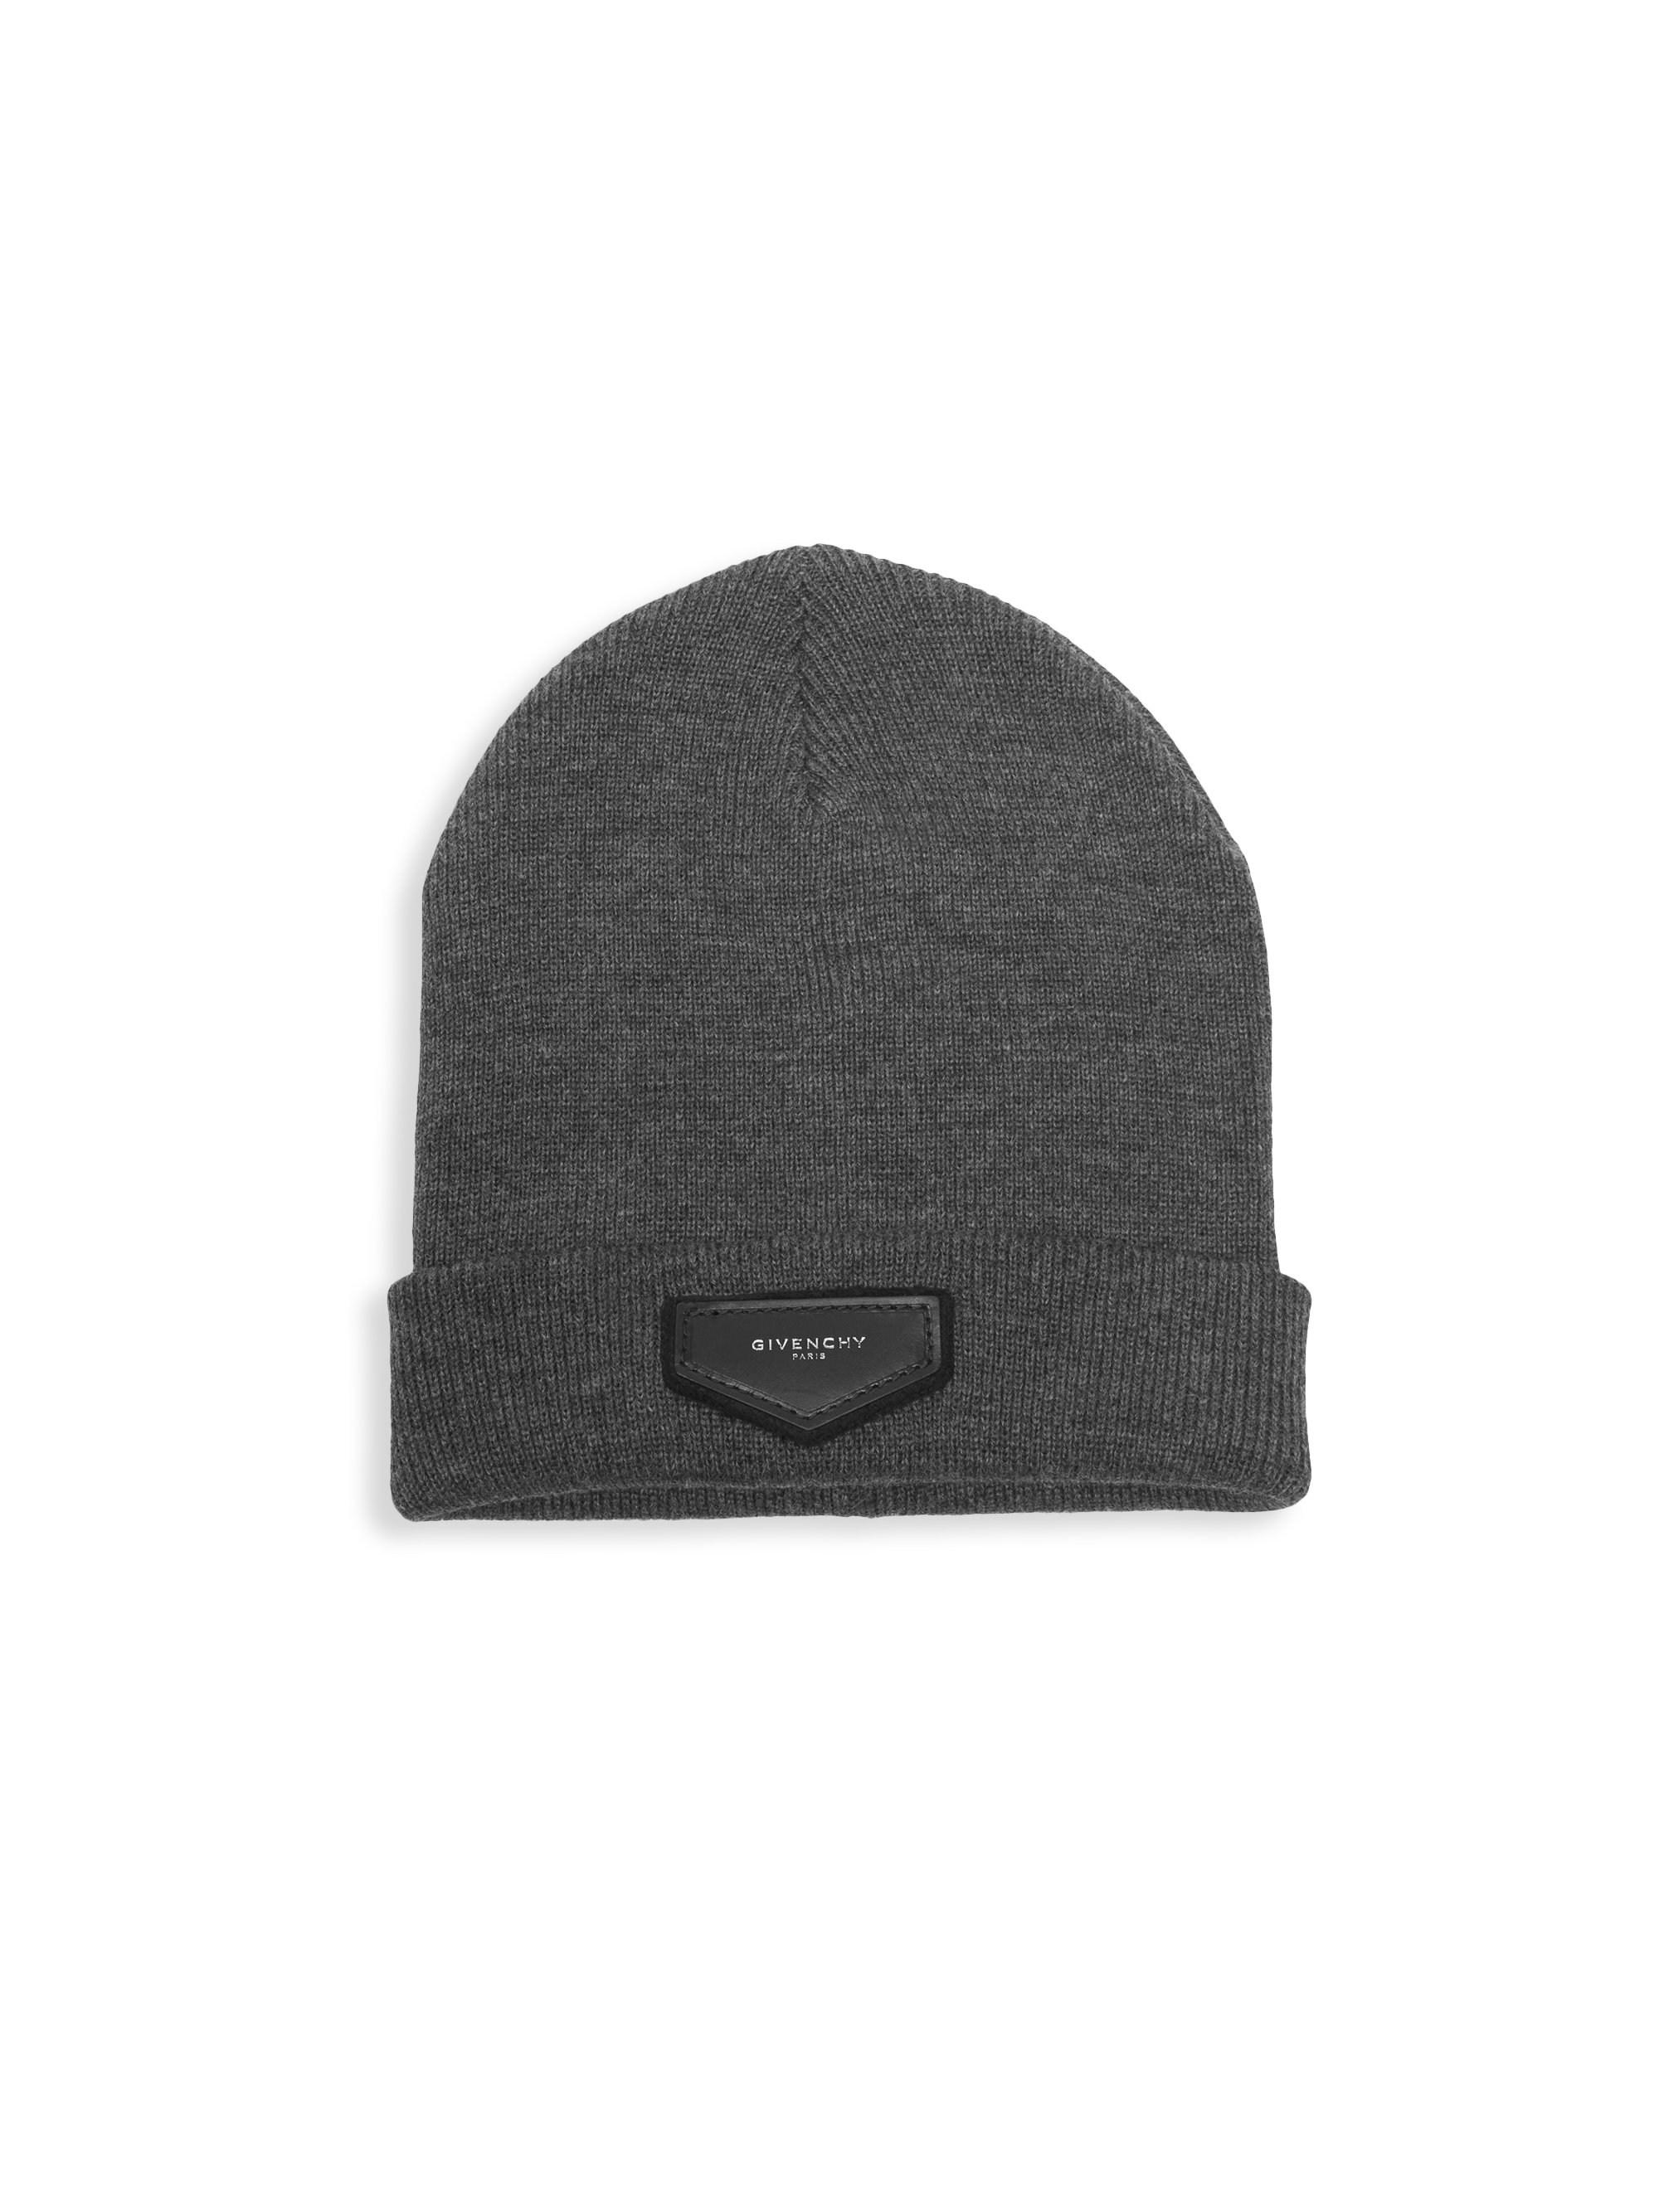 e2fb2b783d5 Givenchy Wool   Cashmere Logo Toque in Gray for Men - Lyst